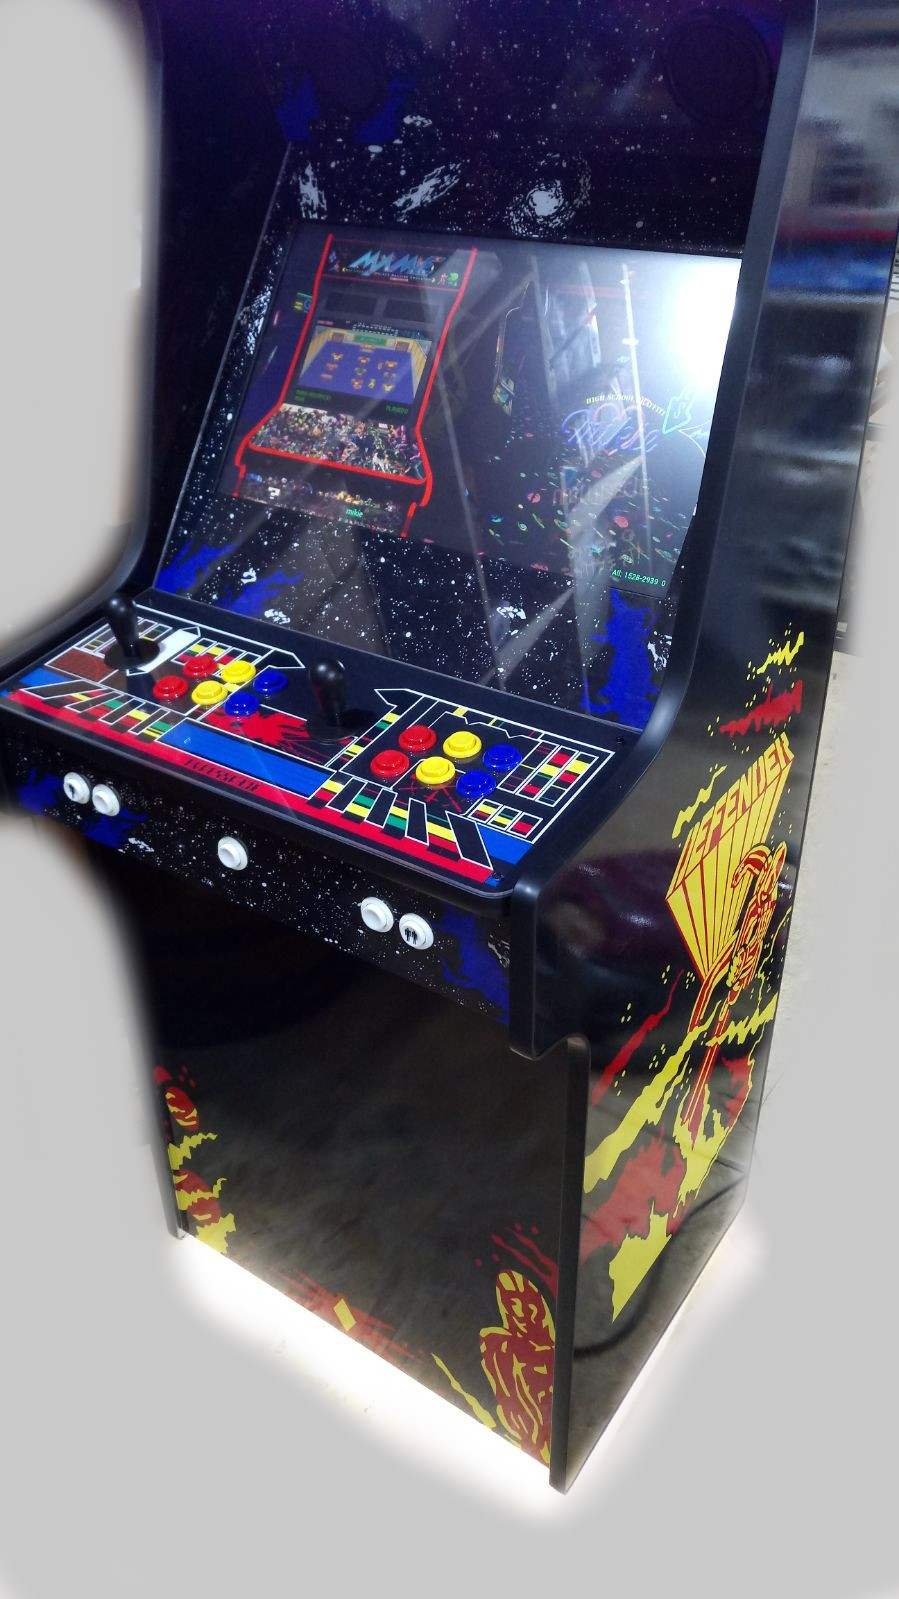 Defender-Arcade-Machine-2-Player-Upright-with-15000-games-retropi-rasberrypi